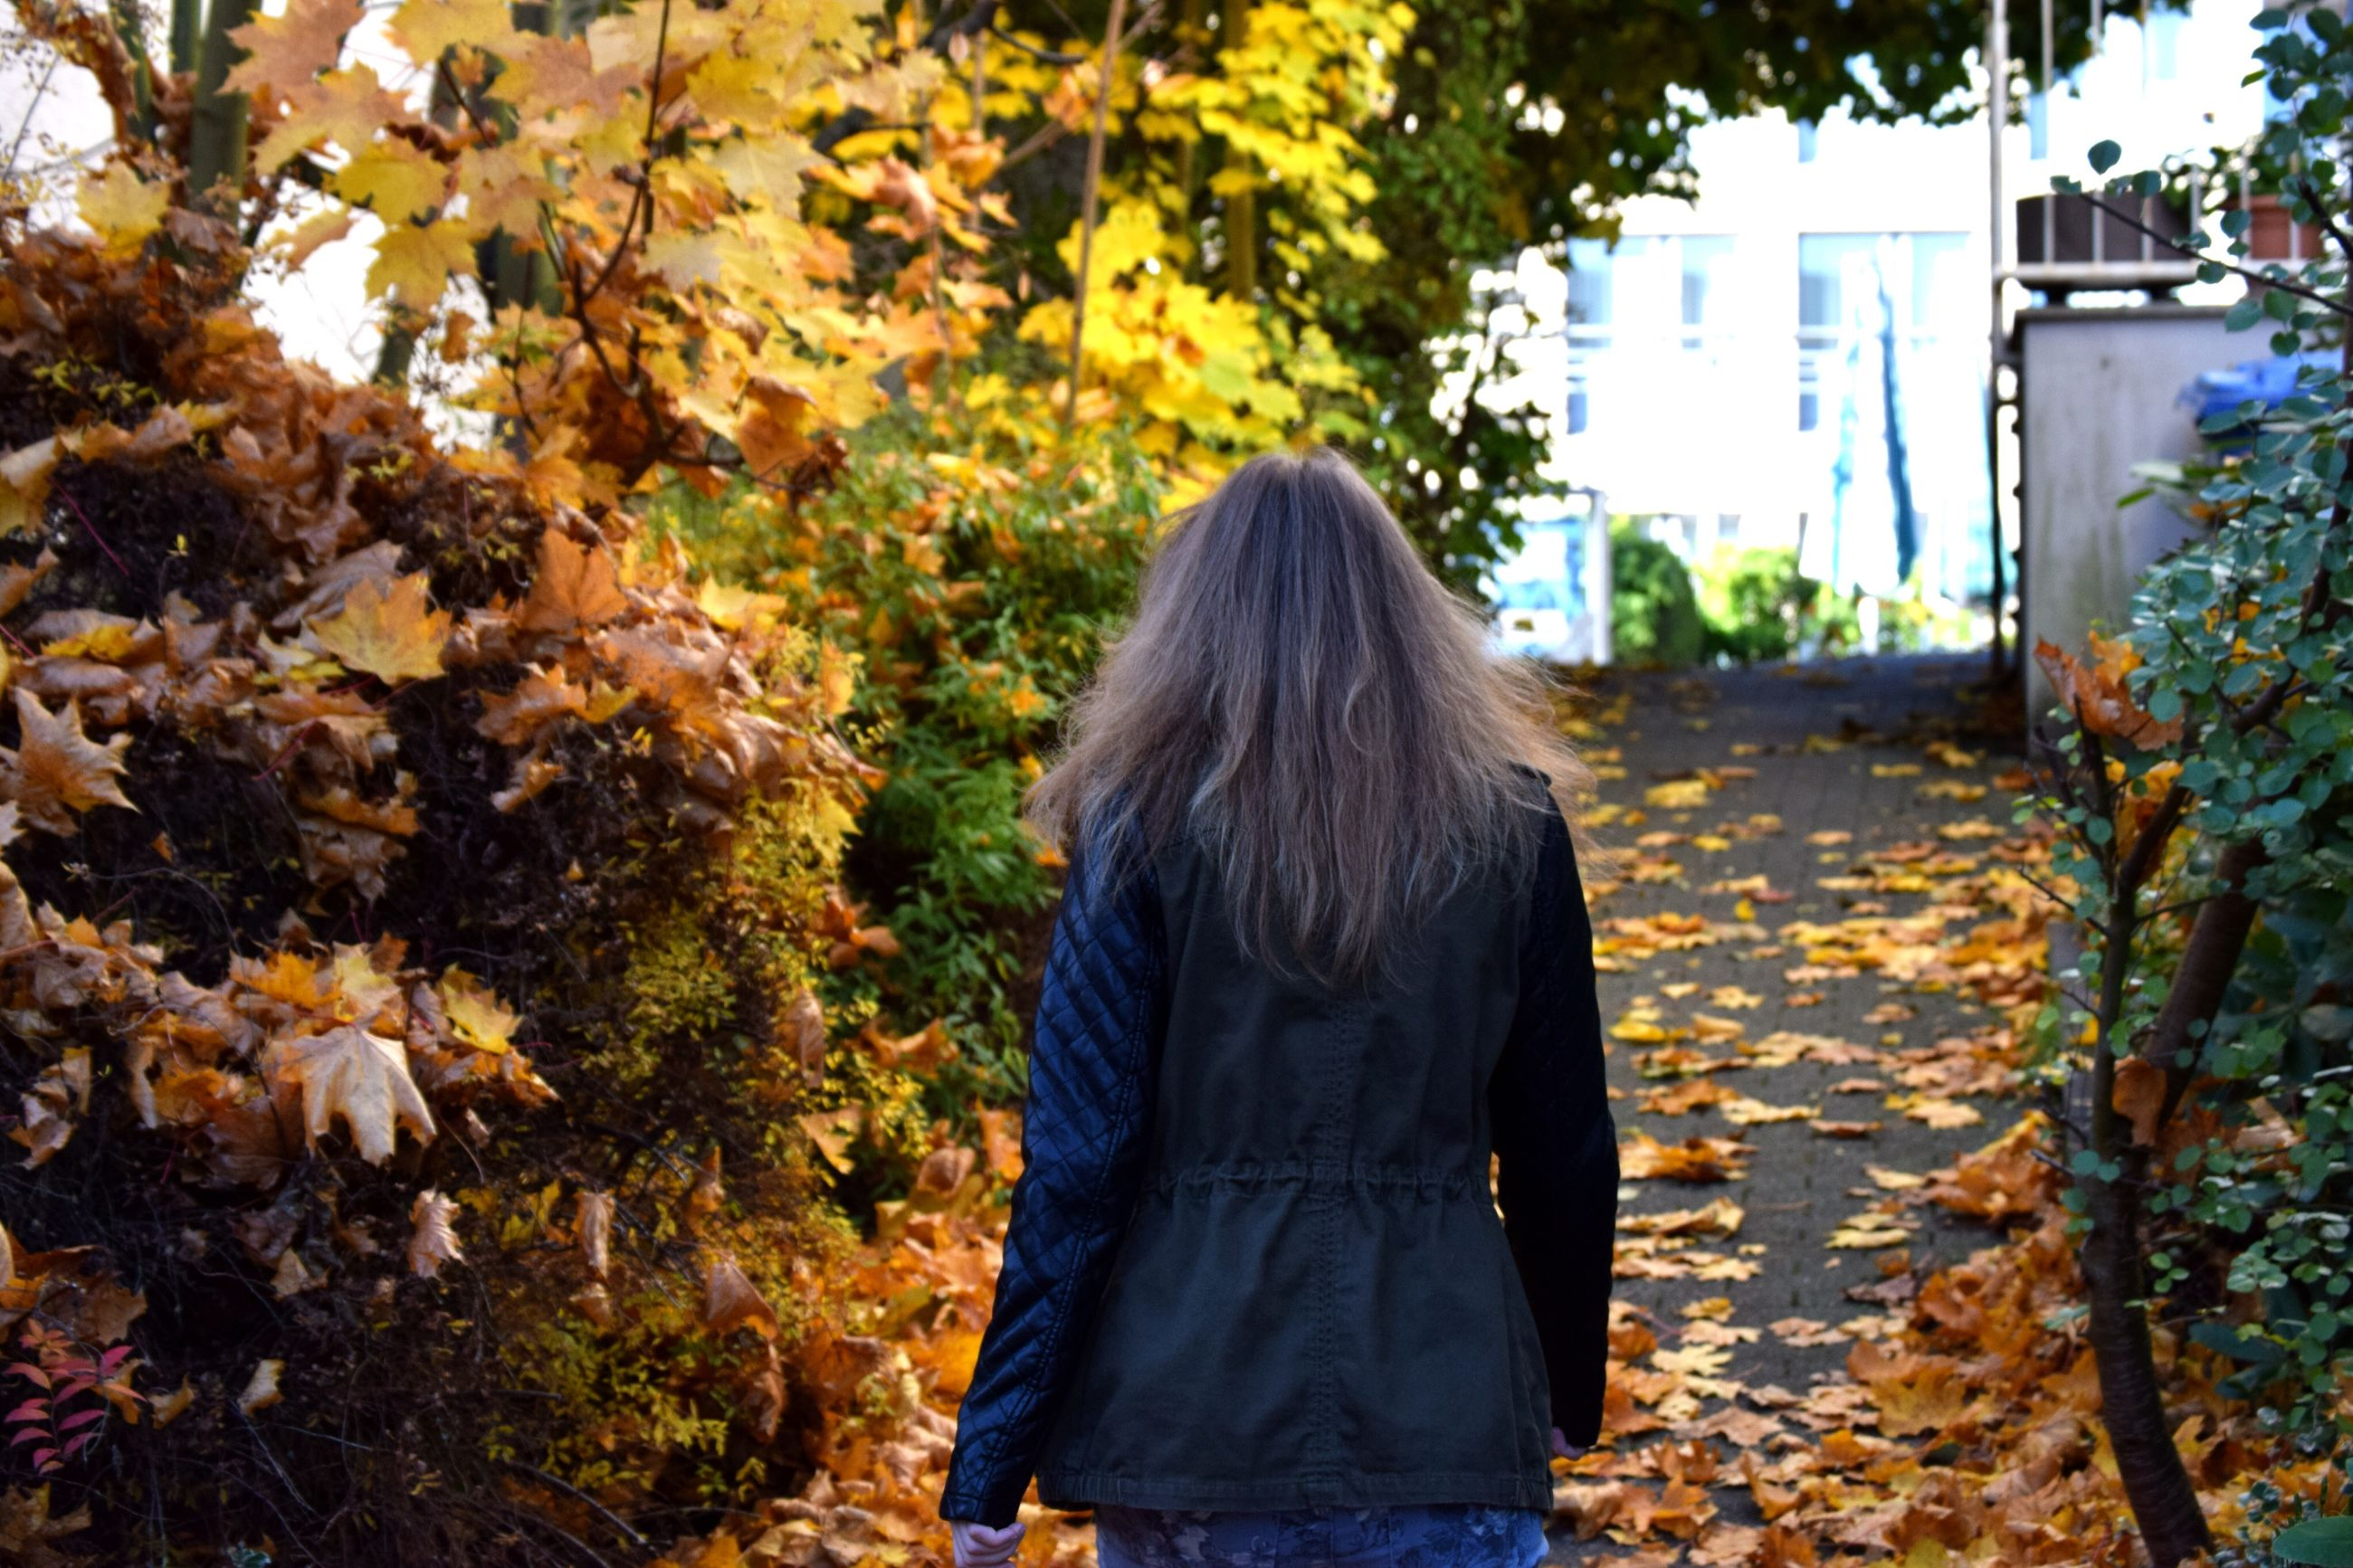 rear view, tree, change, autumn, nature, real people, outdoors, day, leisure activity, leaf, lifestyles, growth, women, one person, beauty in nature, only women, adult, adults only, people